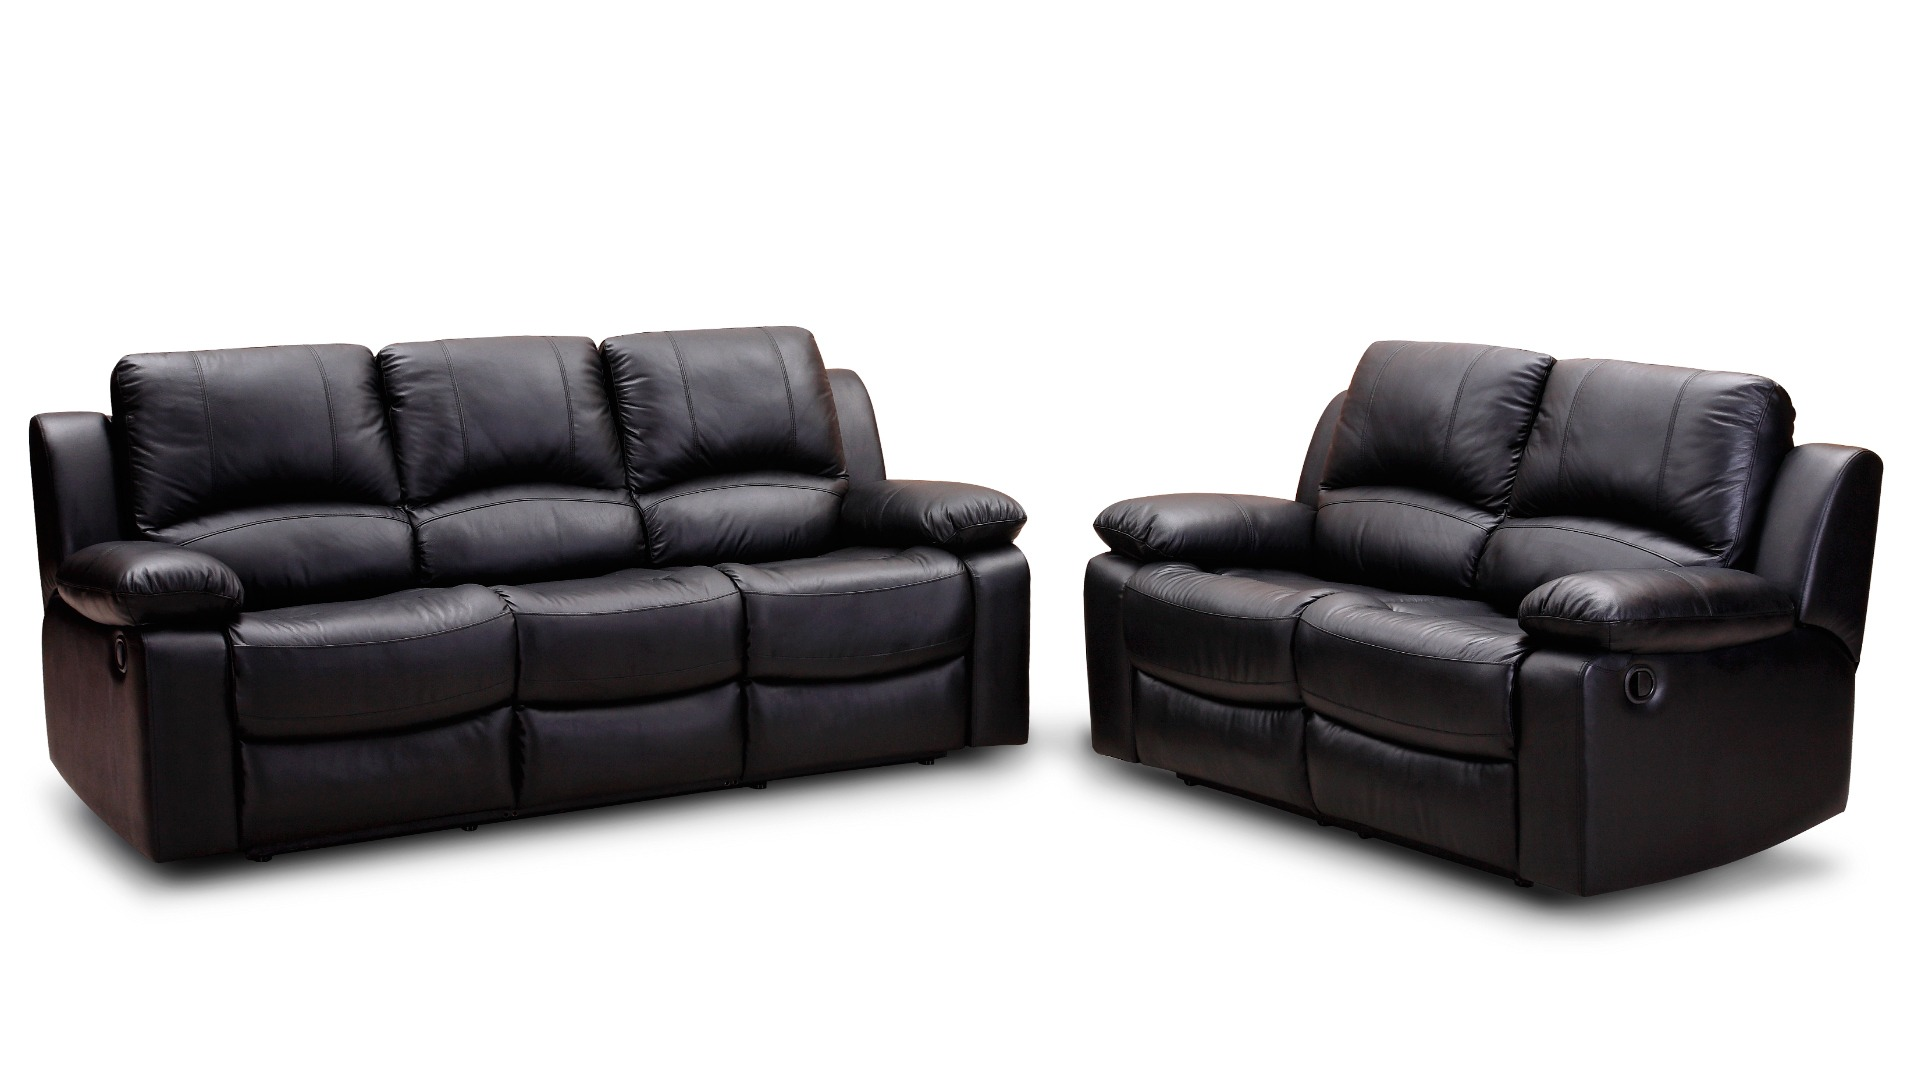 donate sofa in nyc best bed toronto black leather padded cushion couch near to